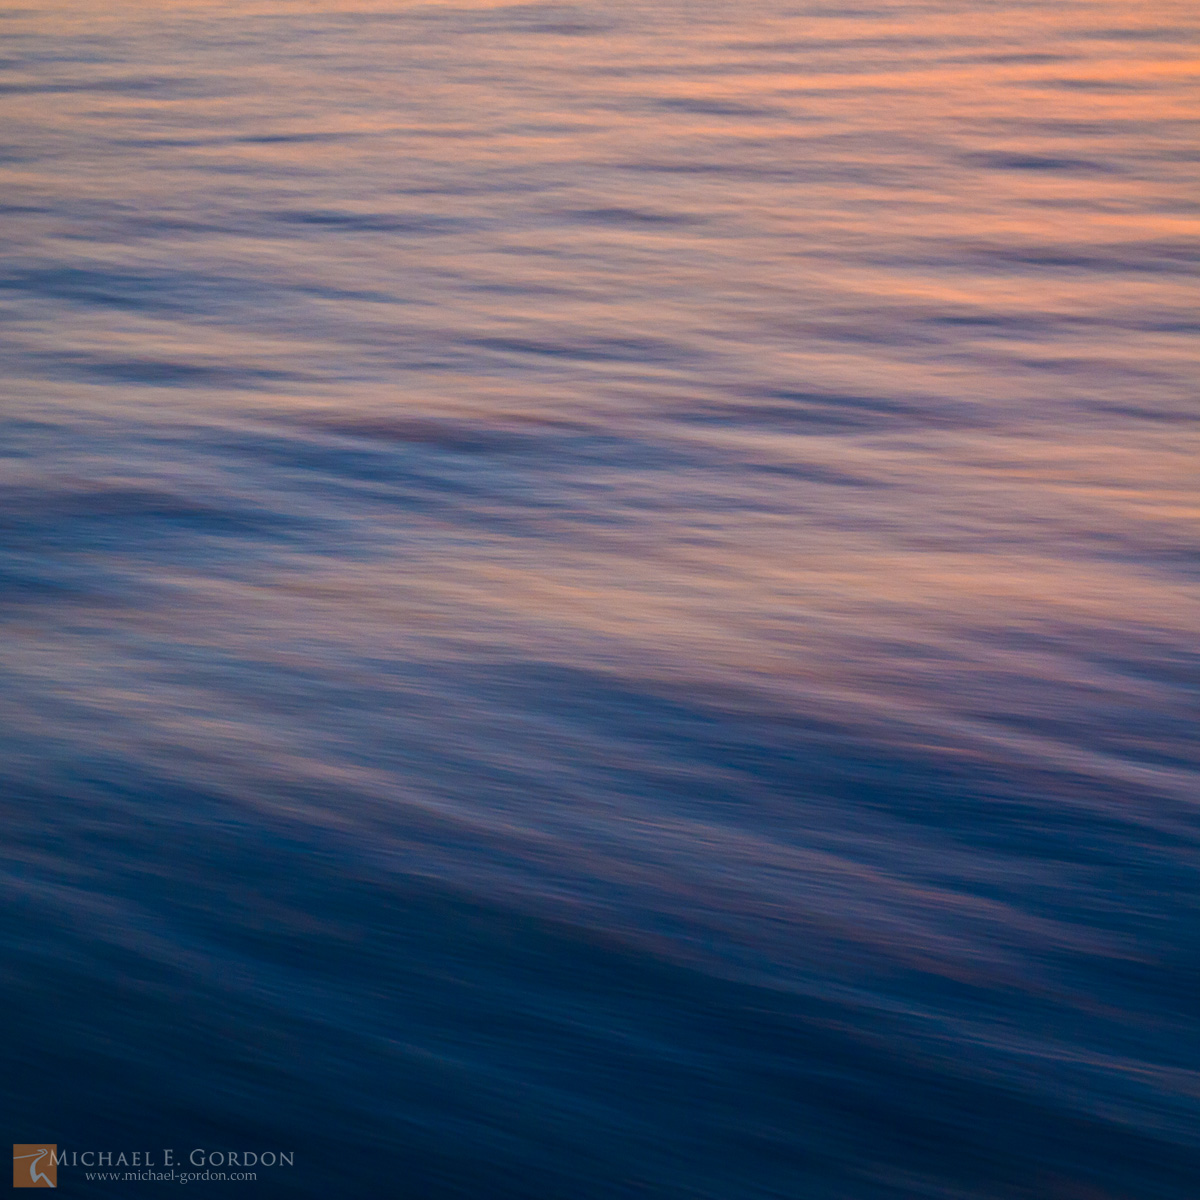 color,photo,picture,Pacific Ocean,waves,current,reflection,wind,breeze,motion,study,blue,pink,red,sunset,blur,soft,peaceful,calm,tranquil, photo